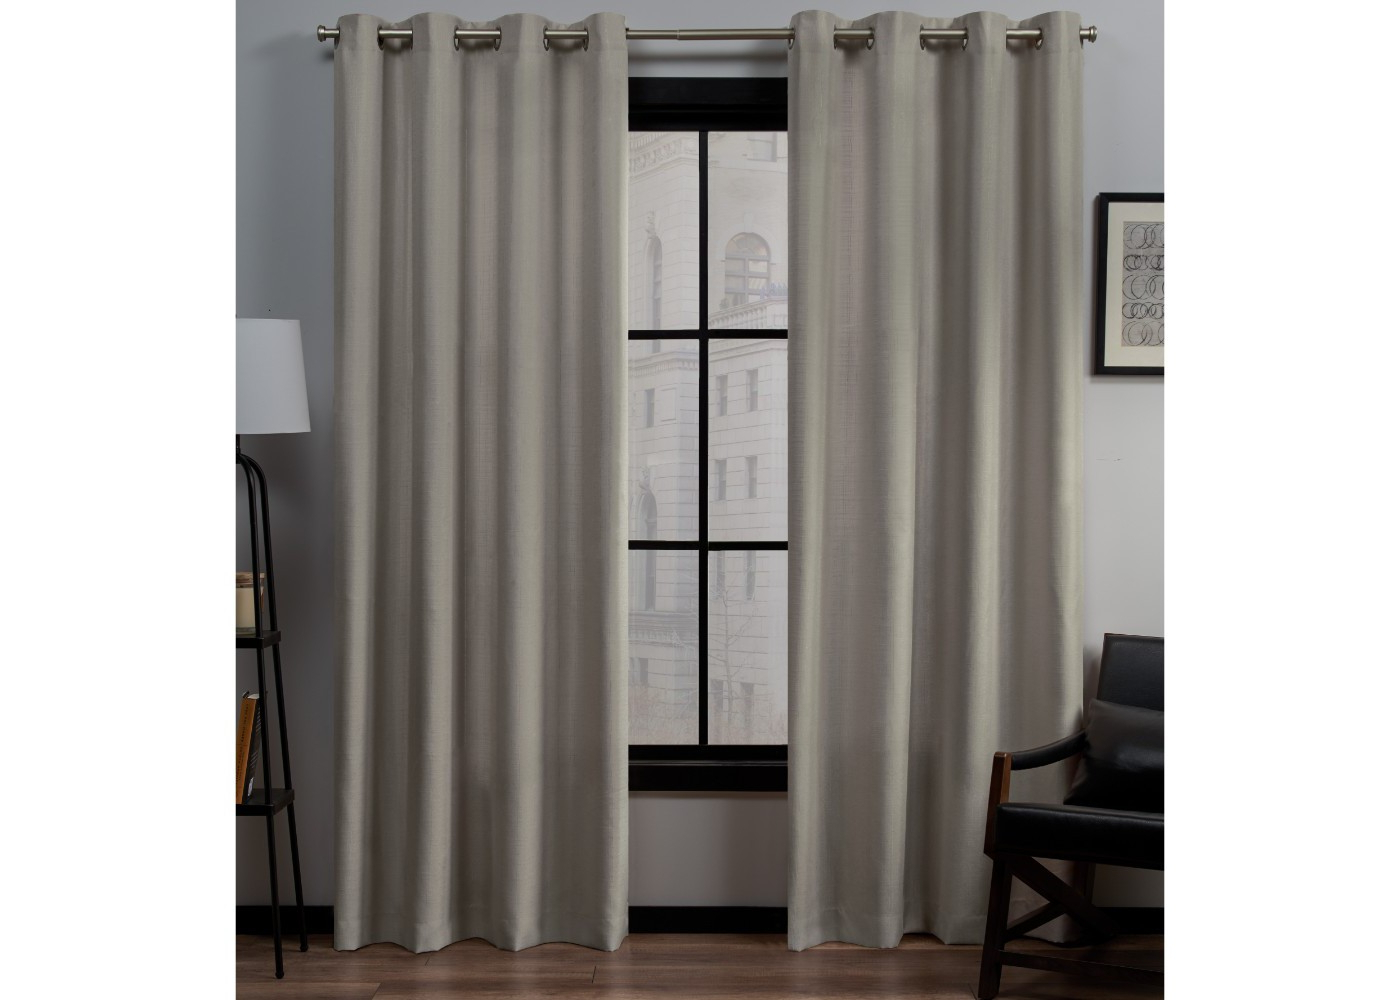 """2020 Twig Insulated Blackout Curtain Panel Pairs With Grommet Top In Exclusive Home Curtains Eh8092 11 2 108g Loha Linen Window Curtain Panel Pair, 54"""" X 108"""", Vintage Linen (View 18 of 20)"""